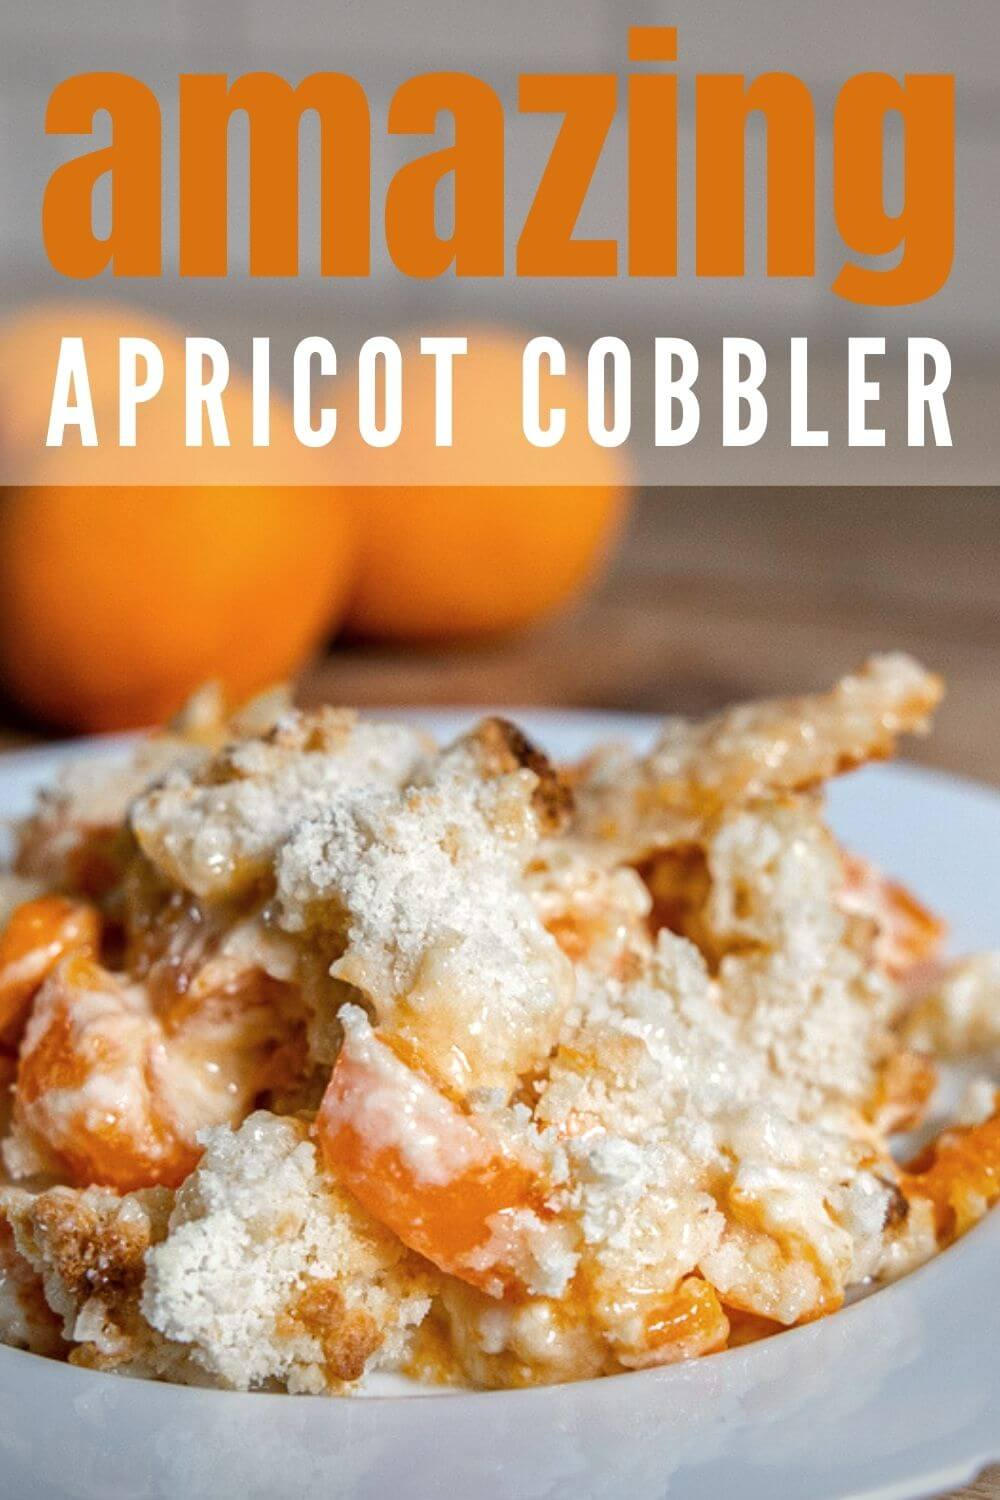 Make this amazing cheesecake apricot cobbler right now! This apricot dessert is the perfect combination of sweet, tart, and creamy!